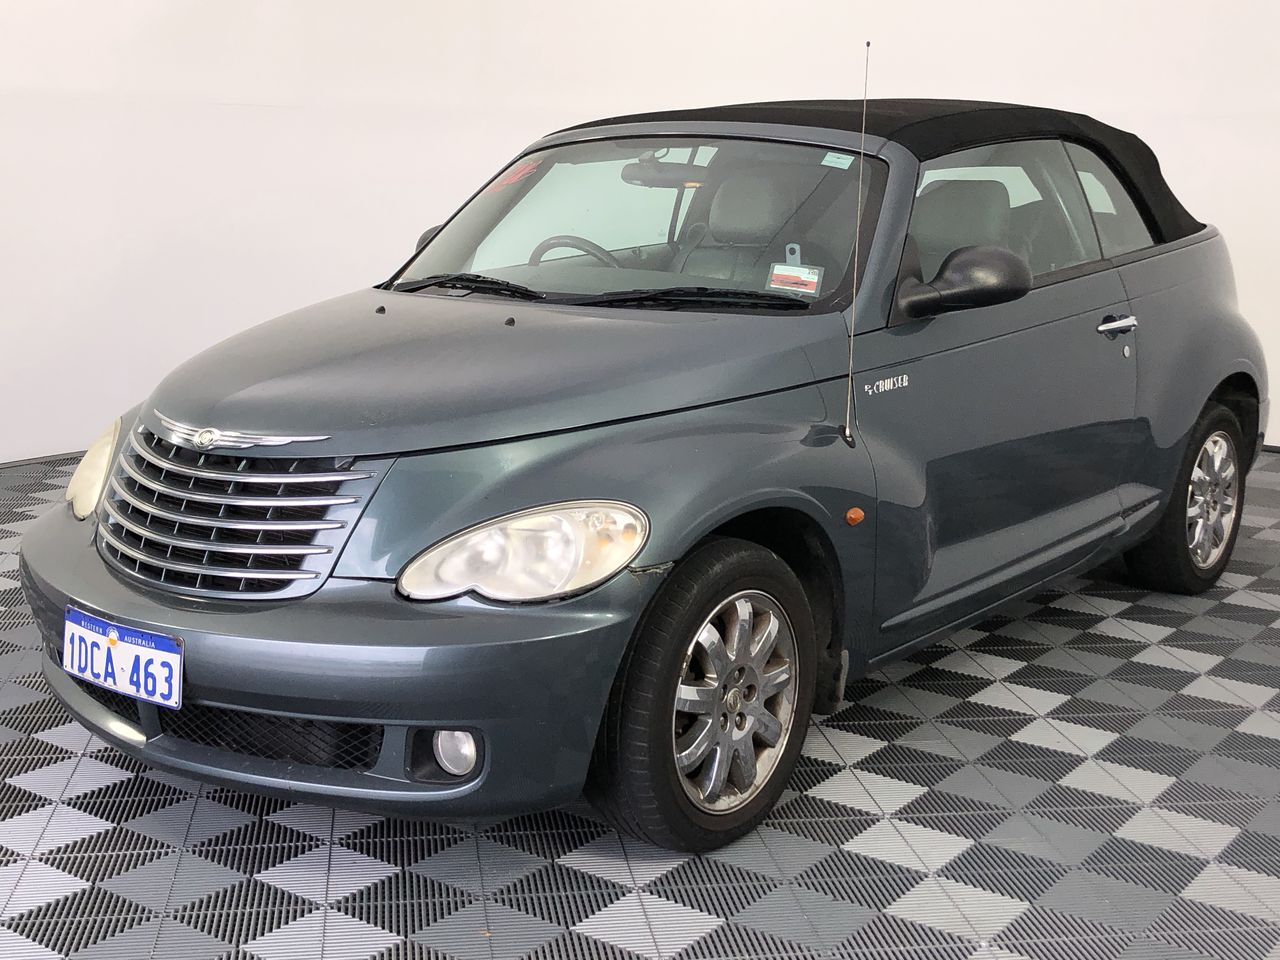 2006 Chrysler PT Cruiser Limited Automatic Convertible